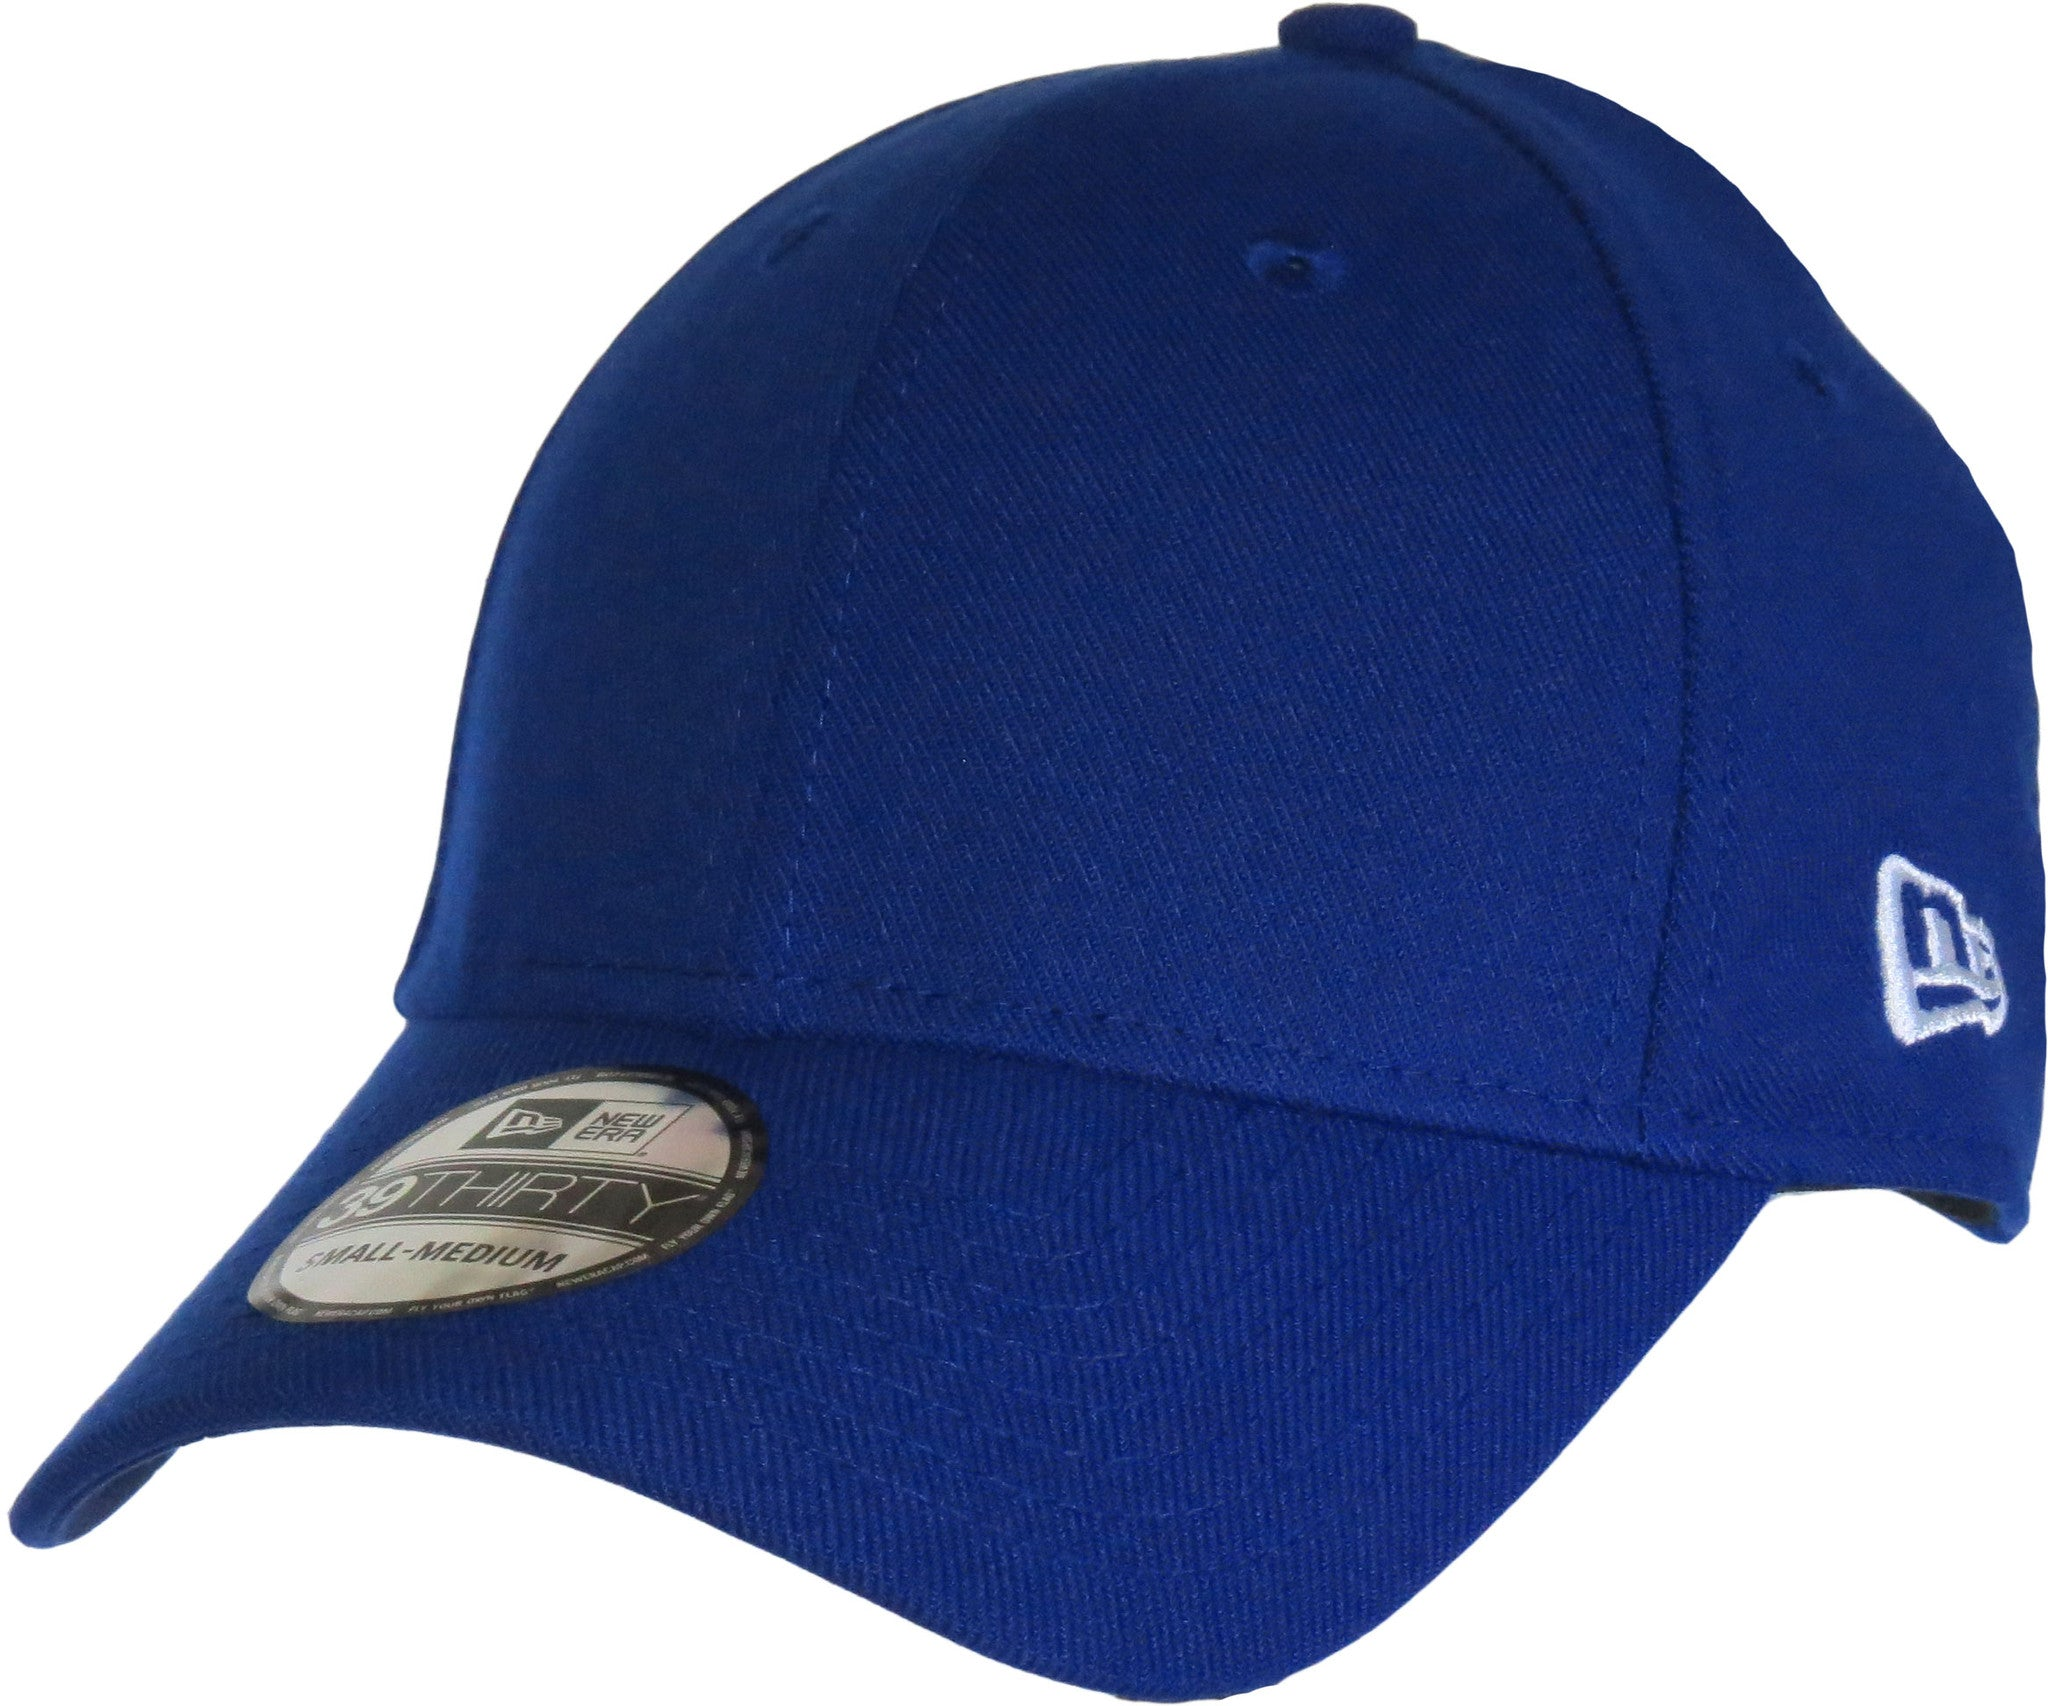 New Era 3930 Classic Curved Peak Stretch Fit Plain Royal Blue Baseball Cap  - pumpheadgear dbfce075f8f3